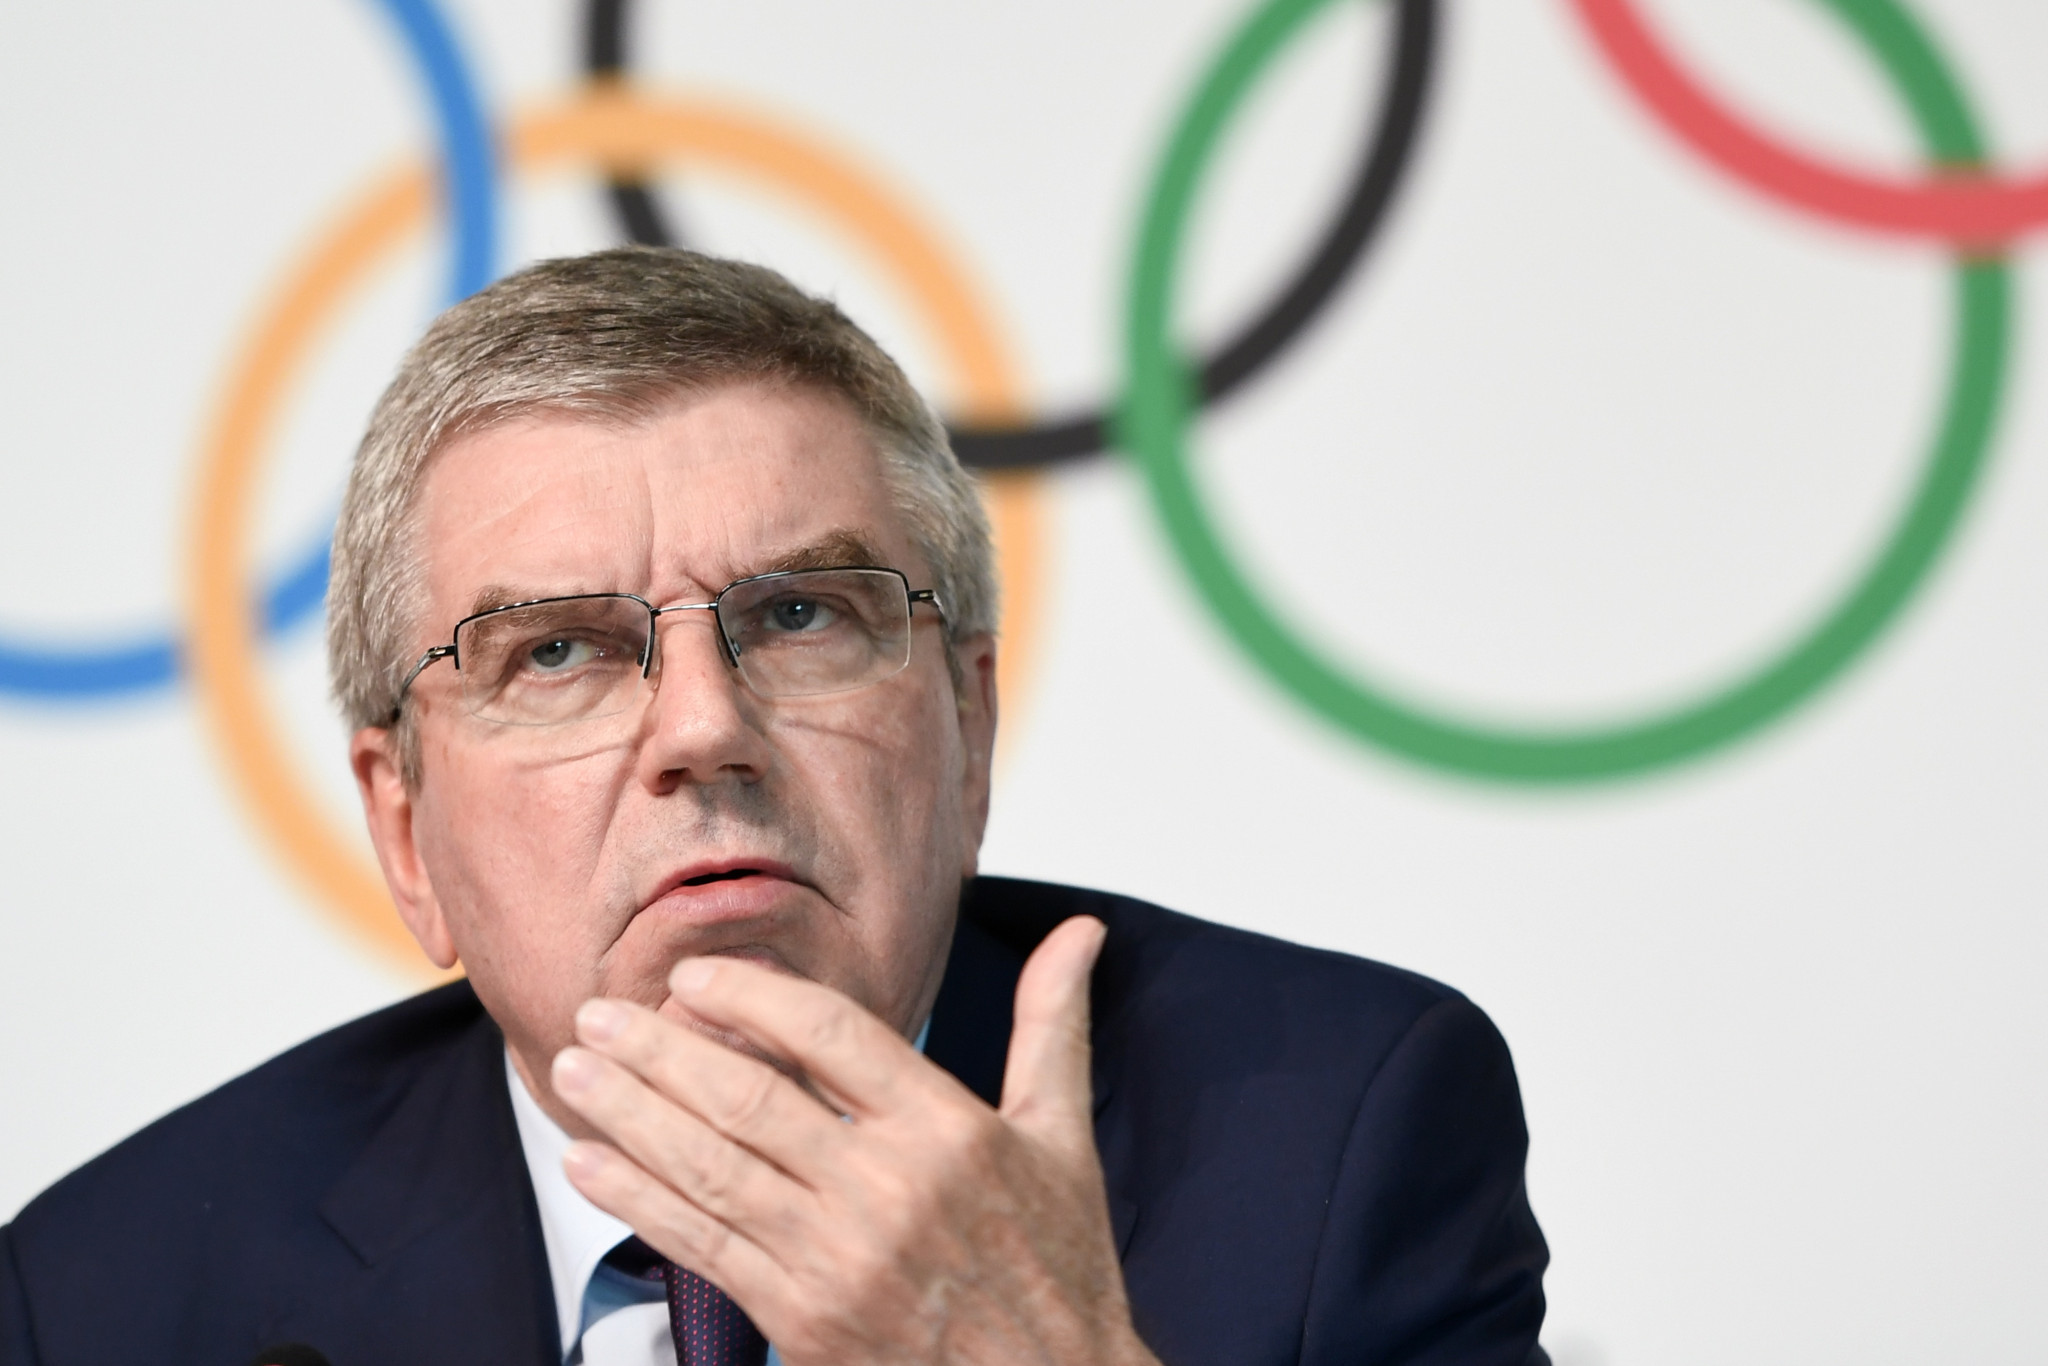 The IOC Executive Board confirmed the suspension of AIBA yesterday ©Getty Images